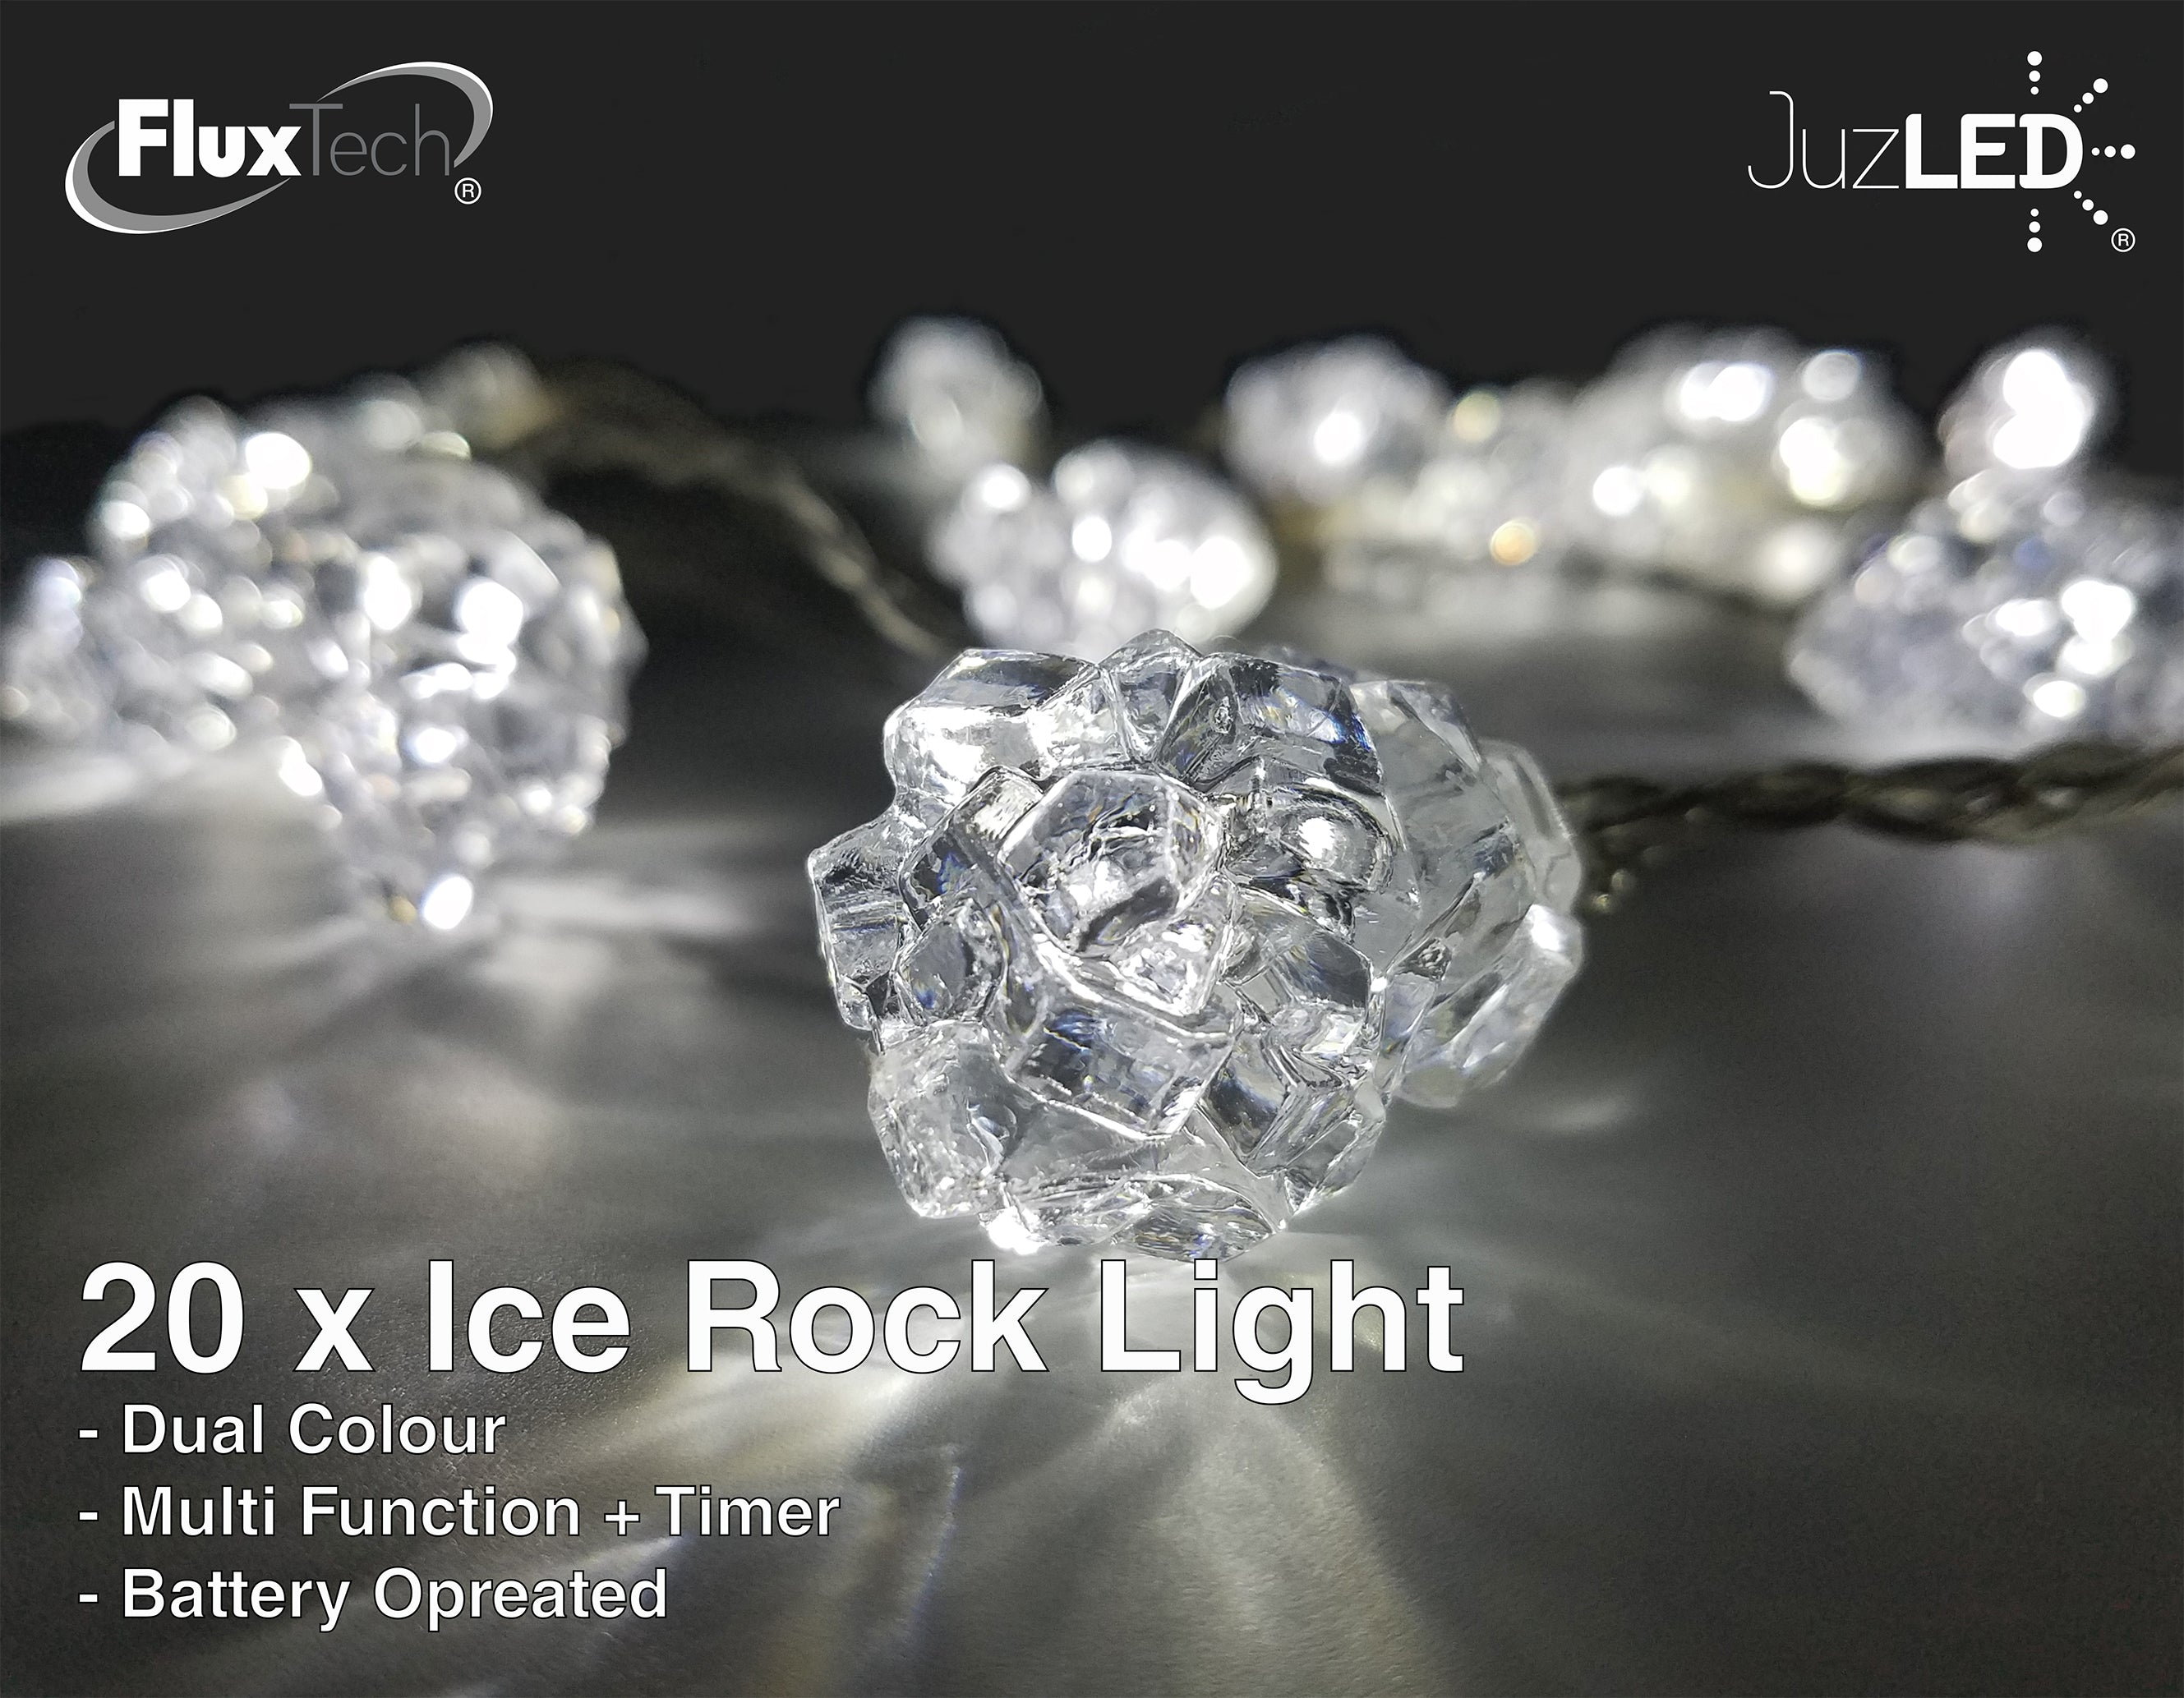 FluxTech - Ice Rock 20 x Dual Colour LED Lights by JustLED – Multi-function Effect – Timer function - Battery Operated